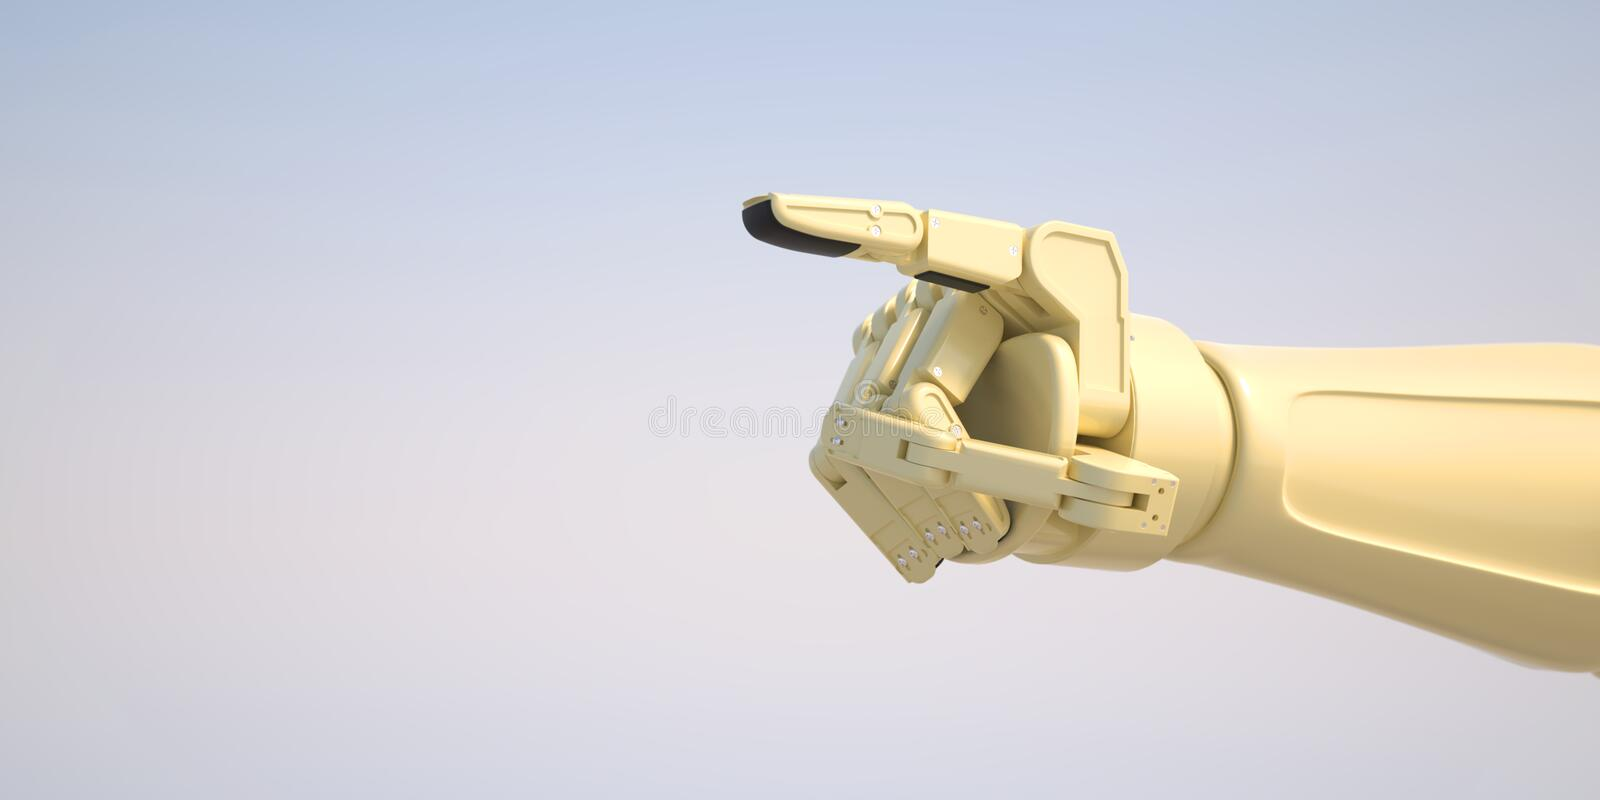 Robot giving command with his index finger. A robot pointing with his index finger a symbol for dictation of technology royalty free stock photography